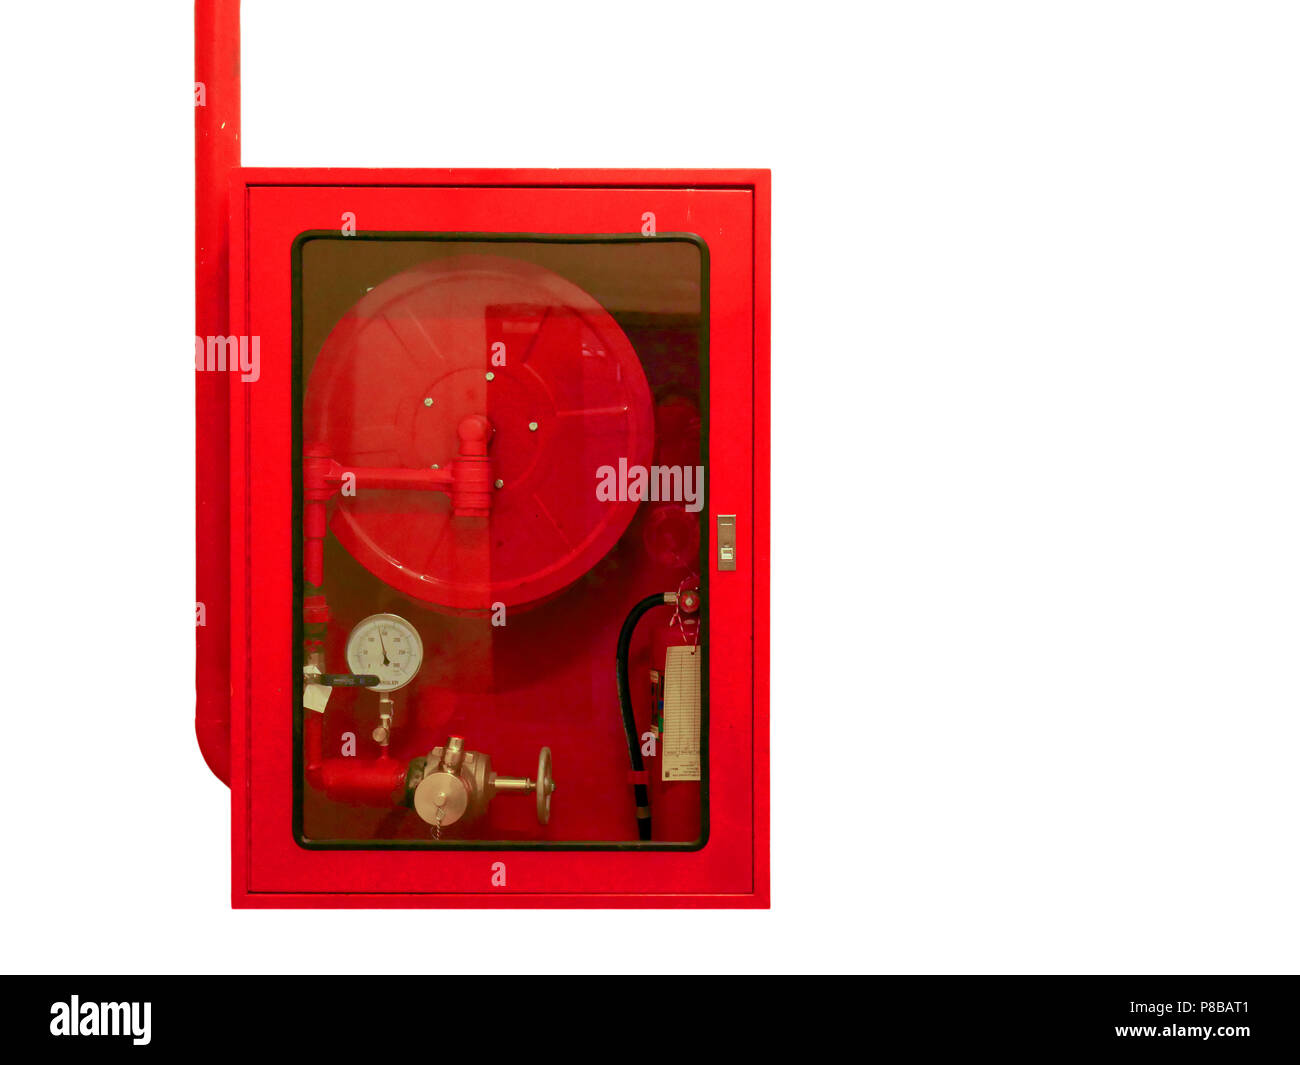 Fire water hoses and fire extinguisher equipment in red cabinet isolate on white background. - Stock Image